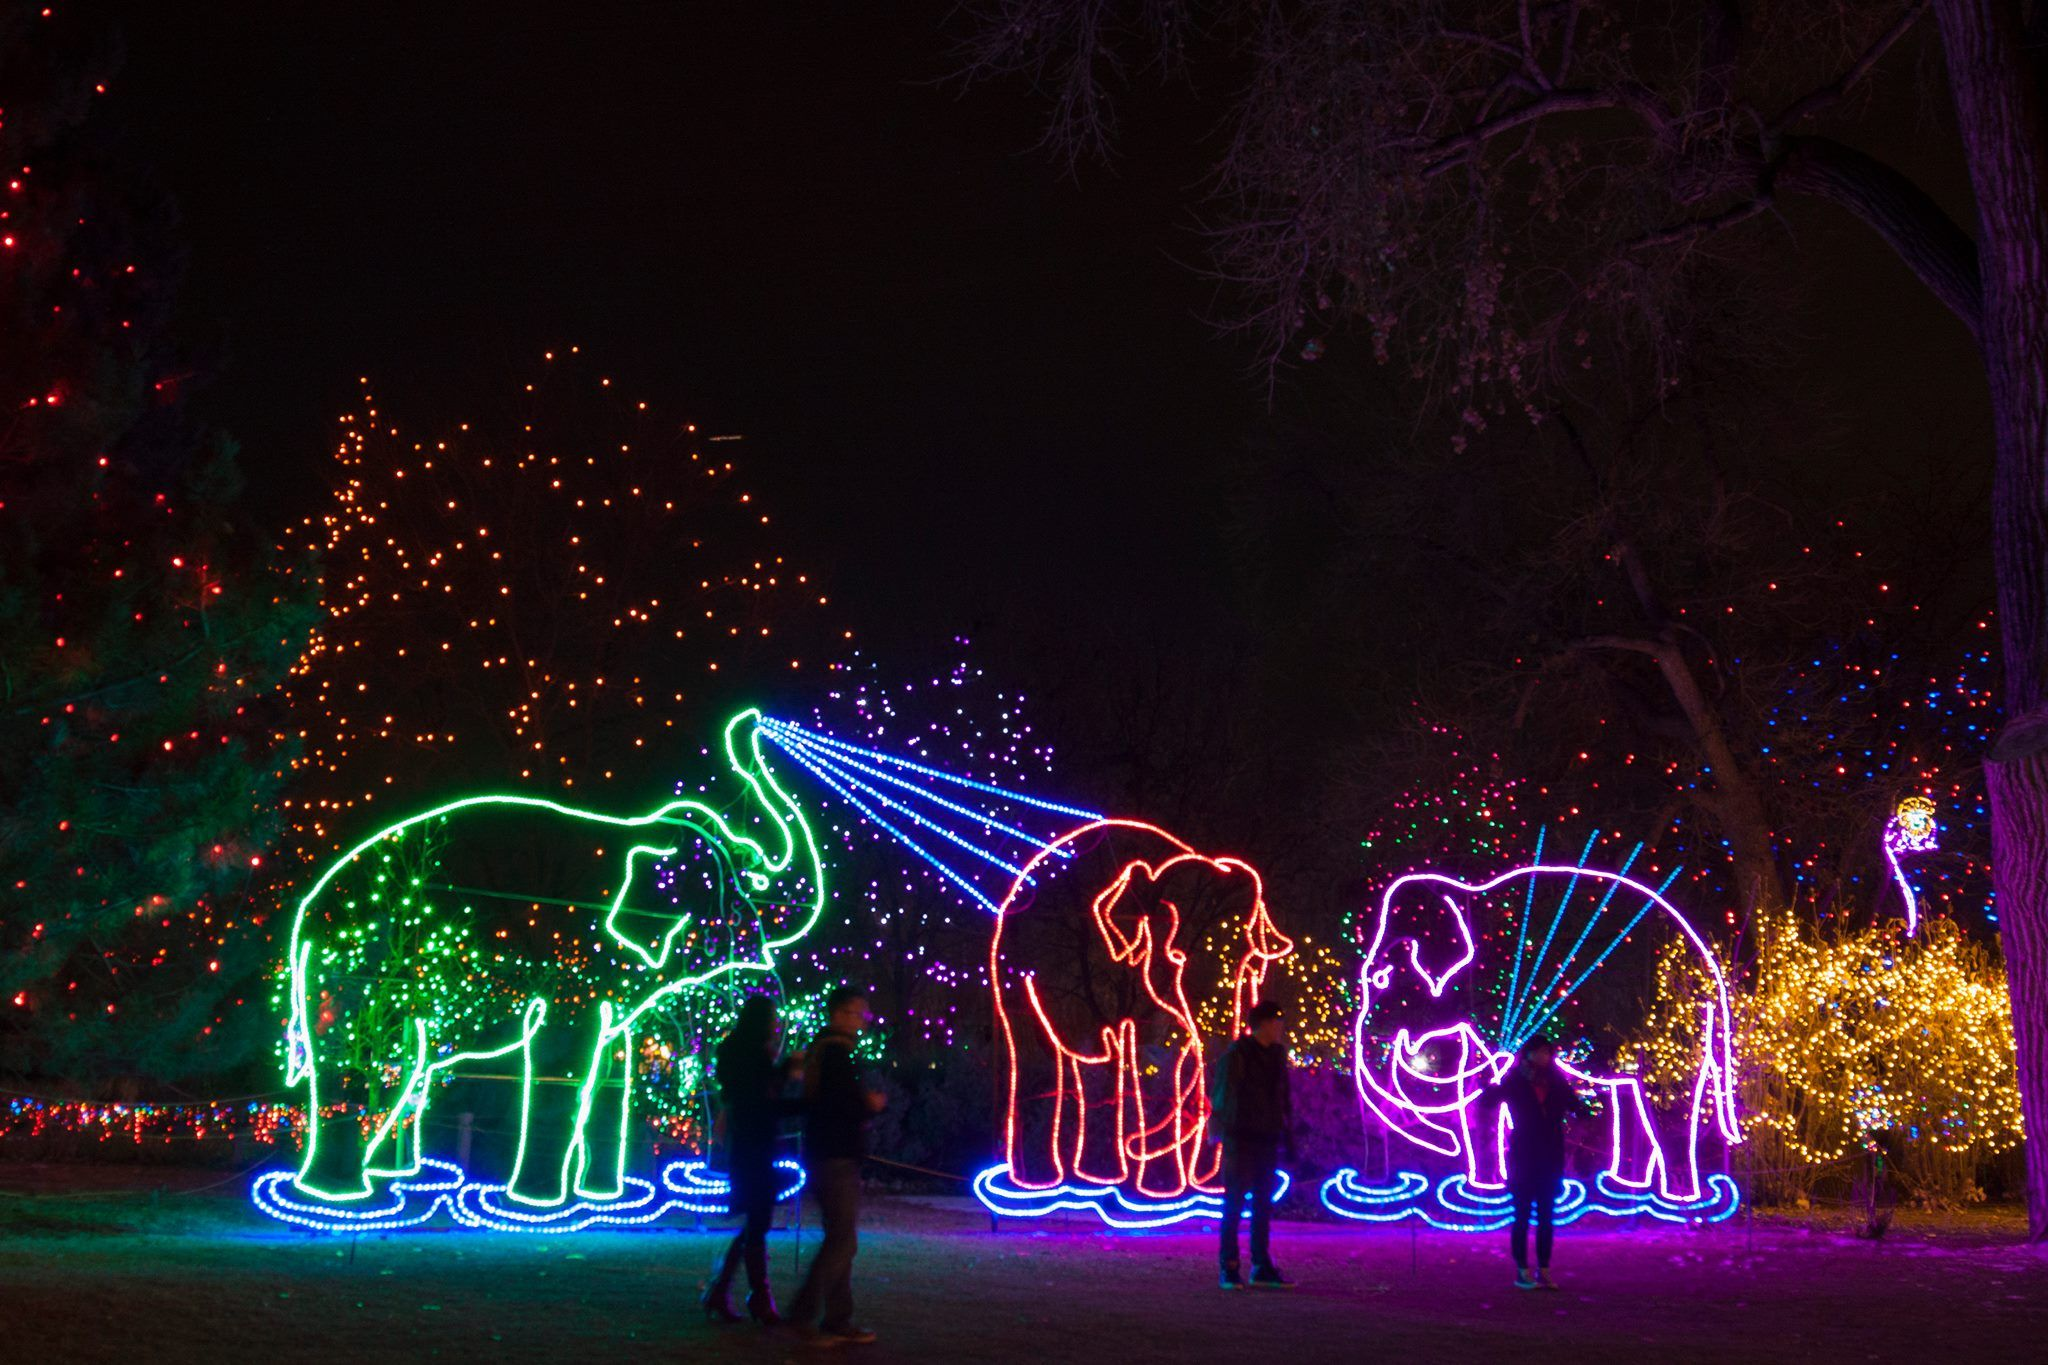 If You Re In The Denver Area Be Sure To Check Out The Denver Zoo Lights Event This Holiday Season Plus Use Abenity To Zoo Lights Denver Zoo Christmas Lights